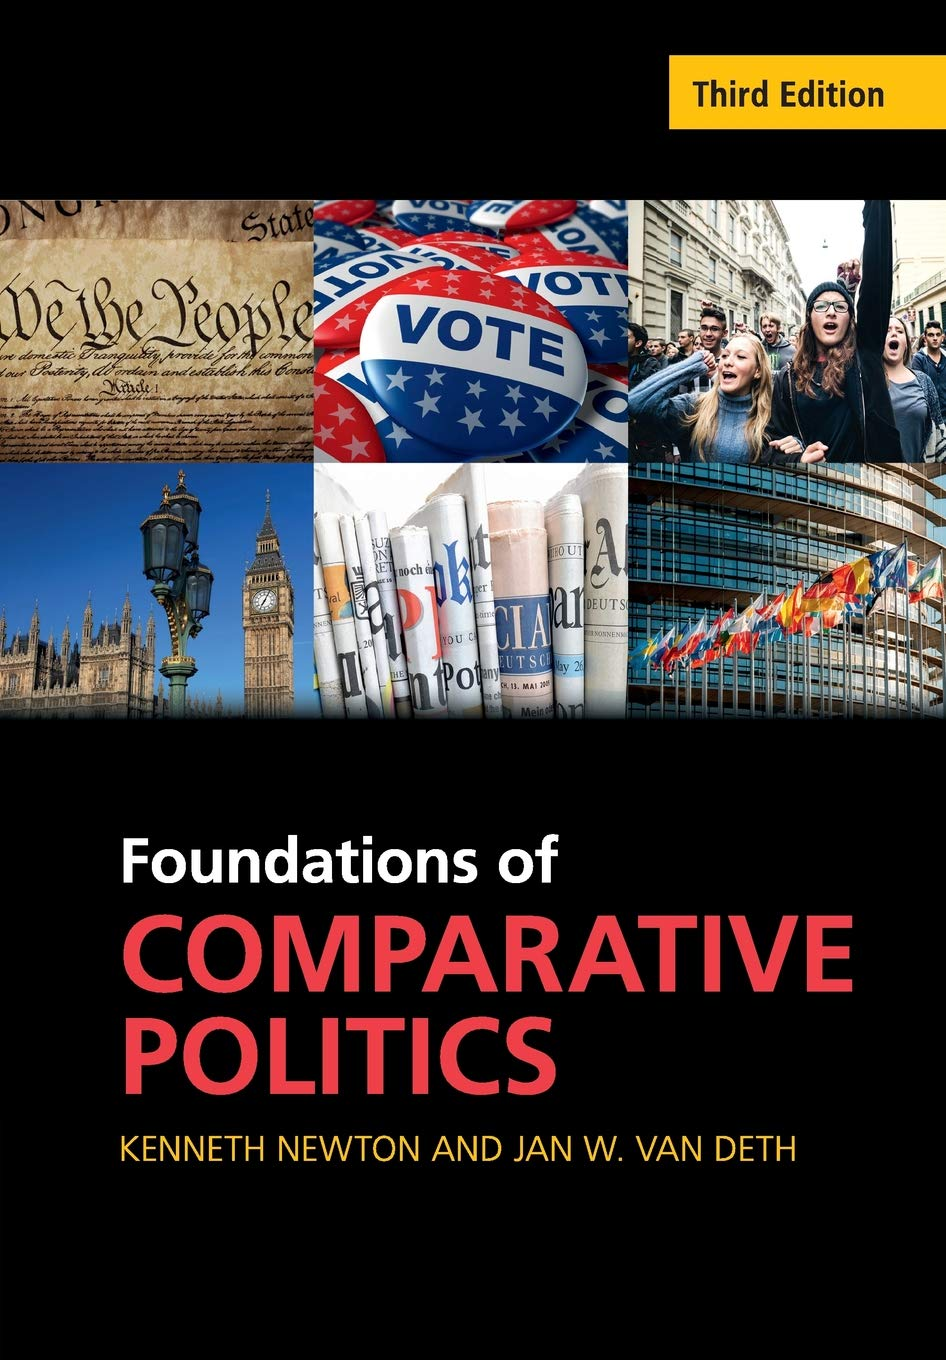 Image OfFoundations Of Comparative Politics